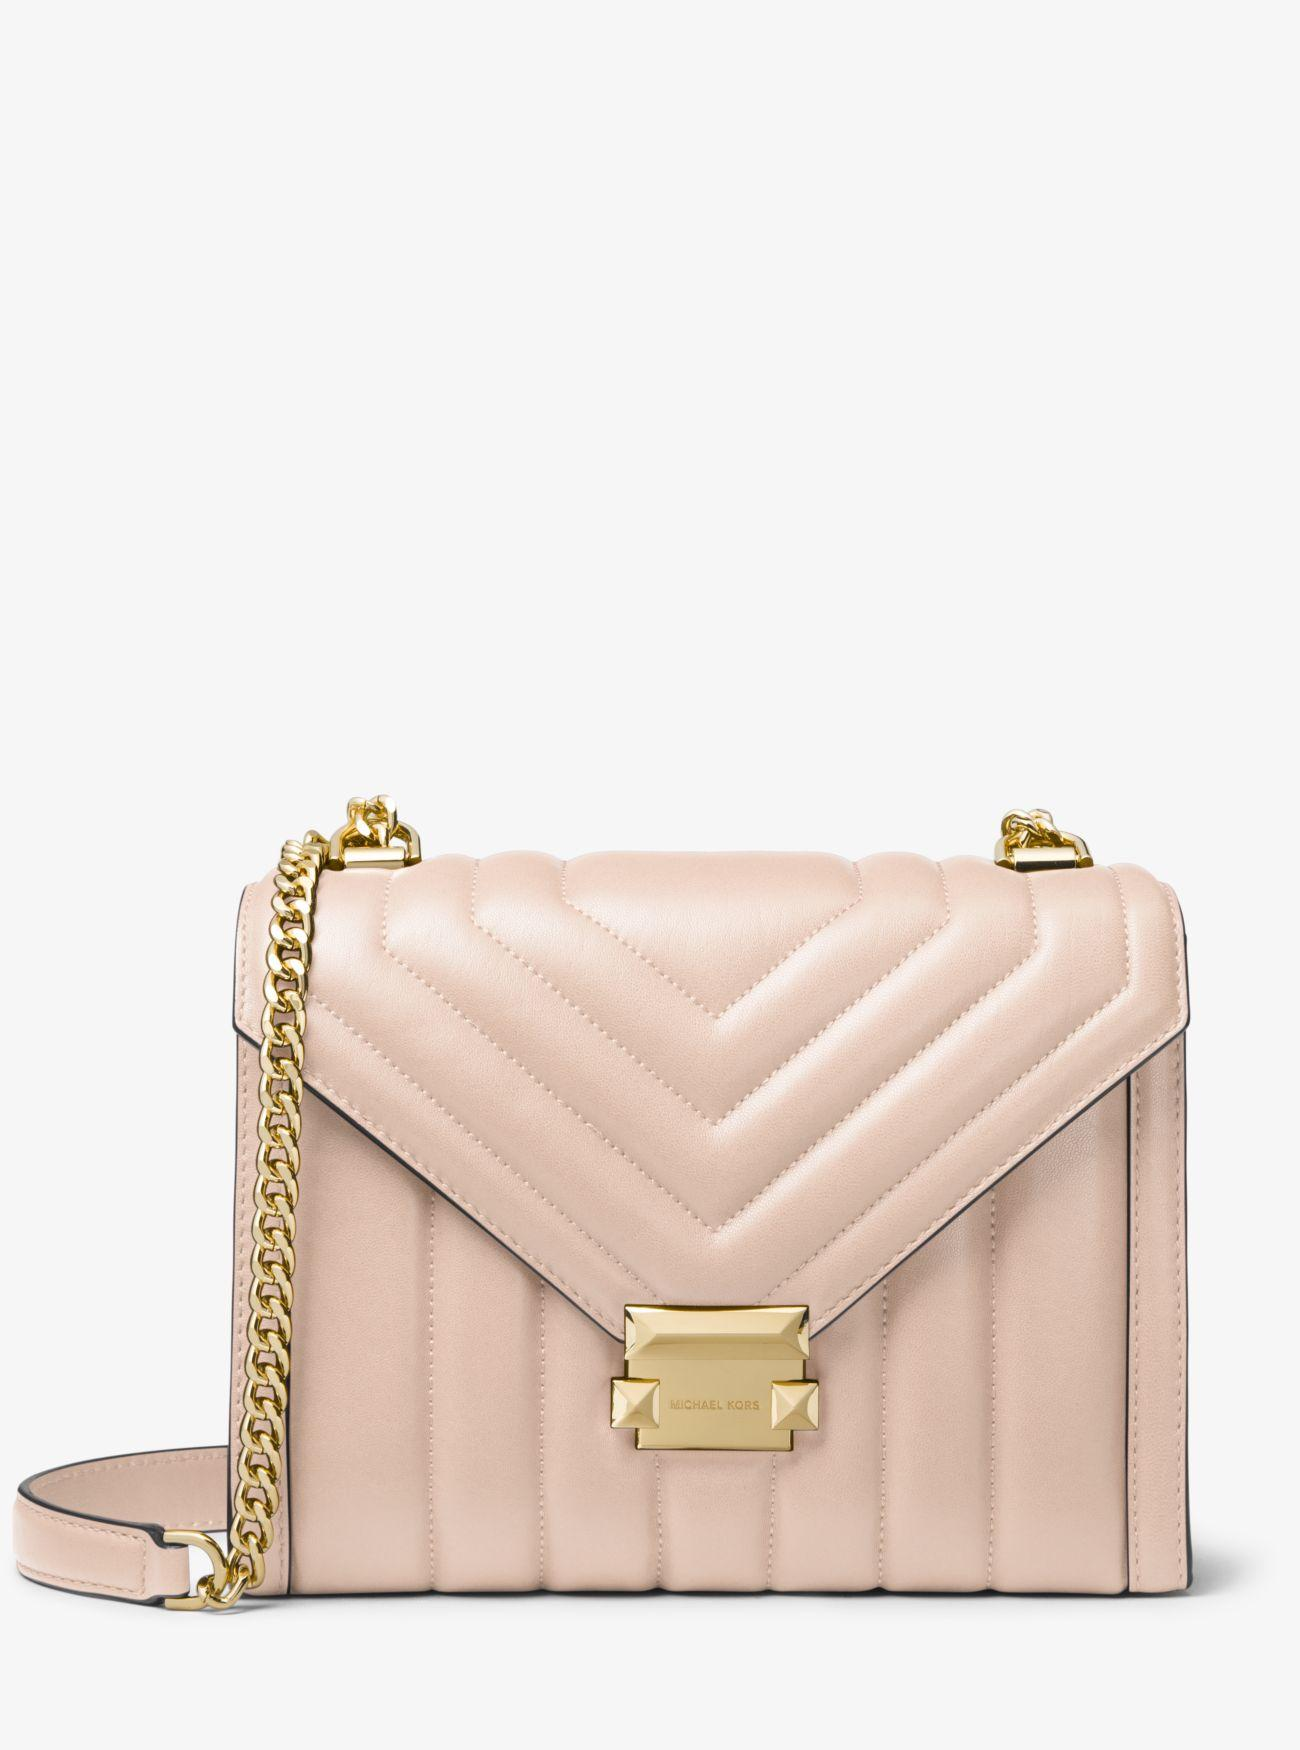 0ed387f815a7 Michael Kors. Women s Pink Whitney Large Quilted Leather Convertible  Shoulder Bag